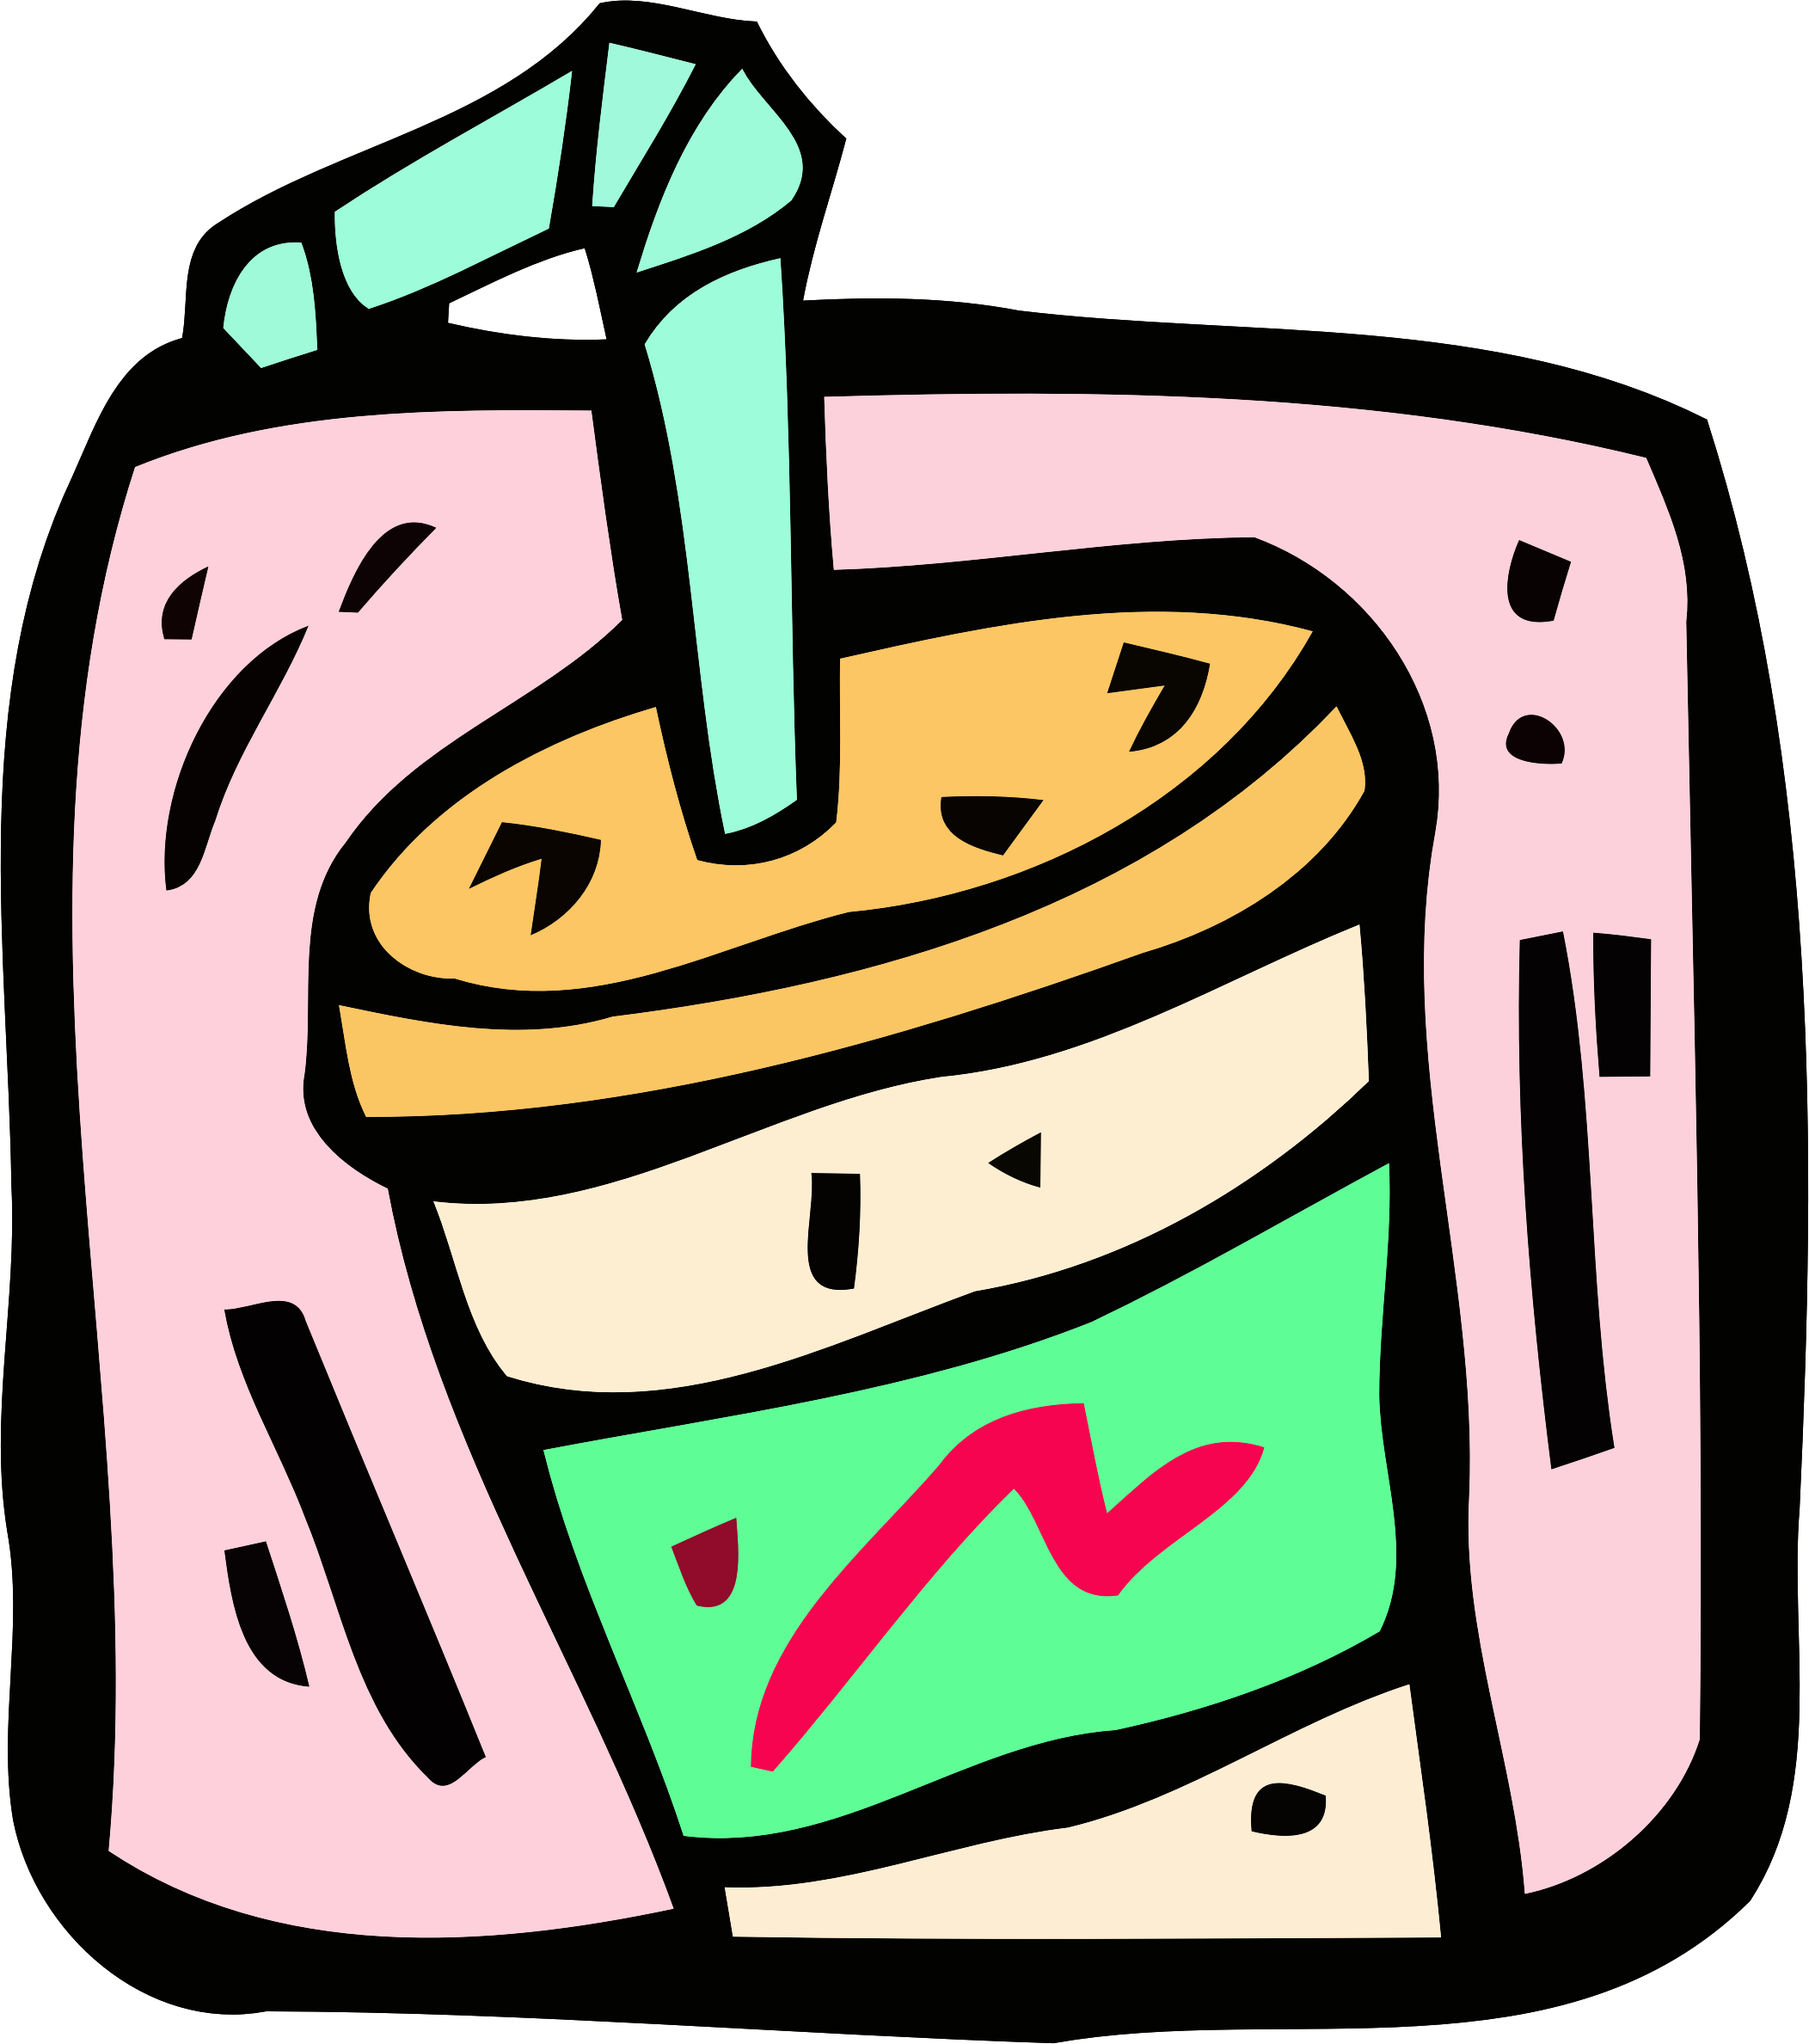 Food and drink icon - milkshake by Firkin